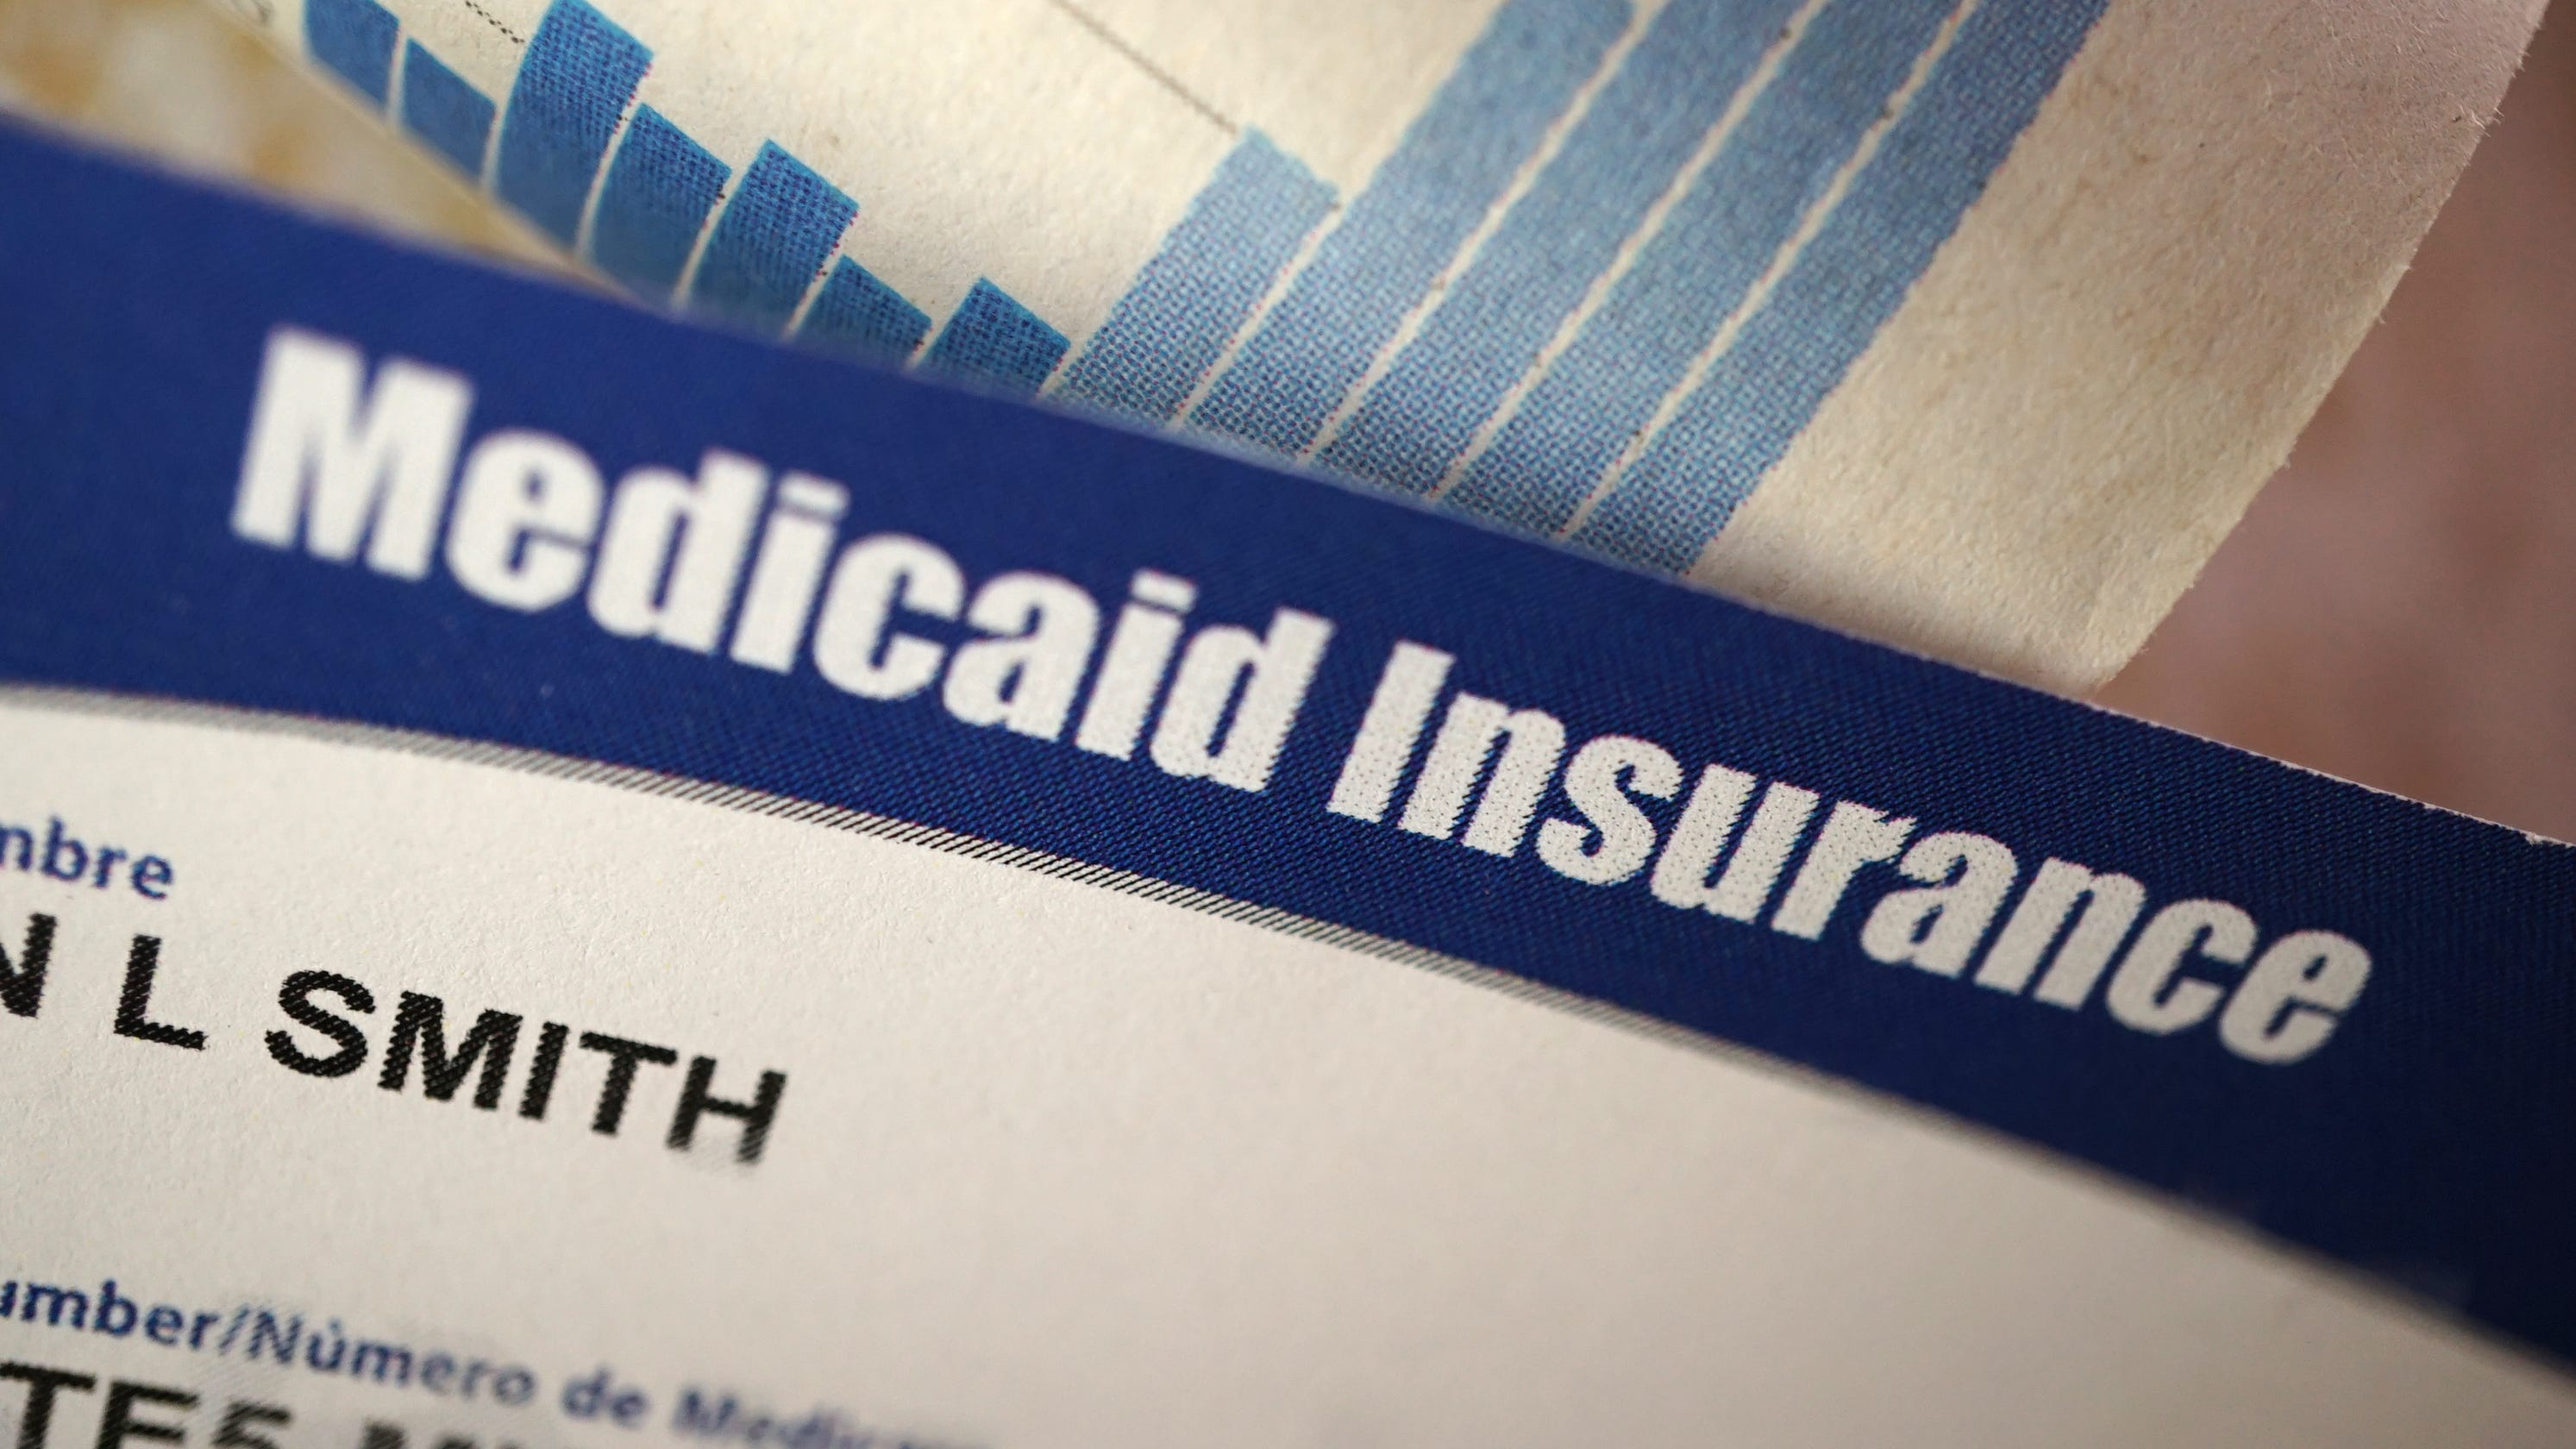 SC wants to make people work as a condition to get Medicaid. How will it affect residents?